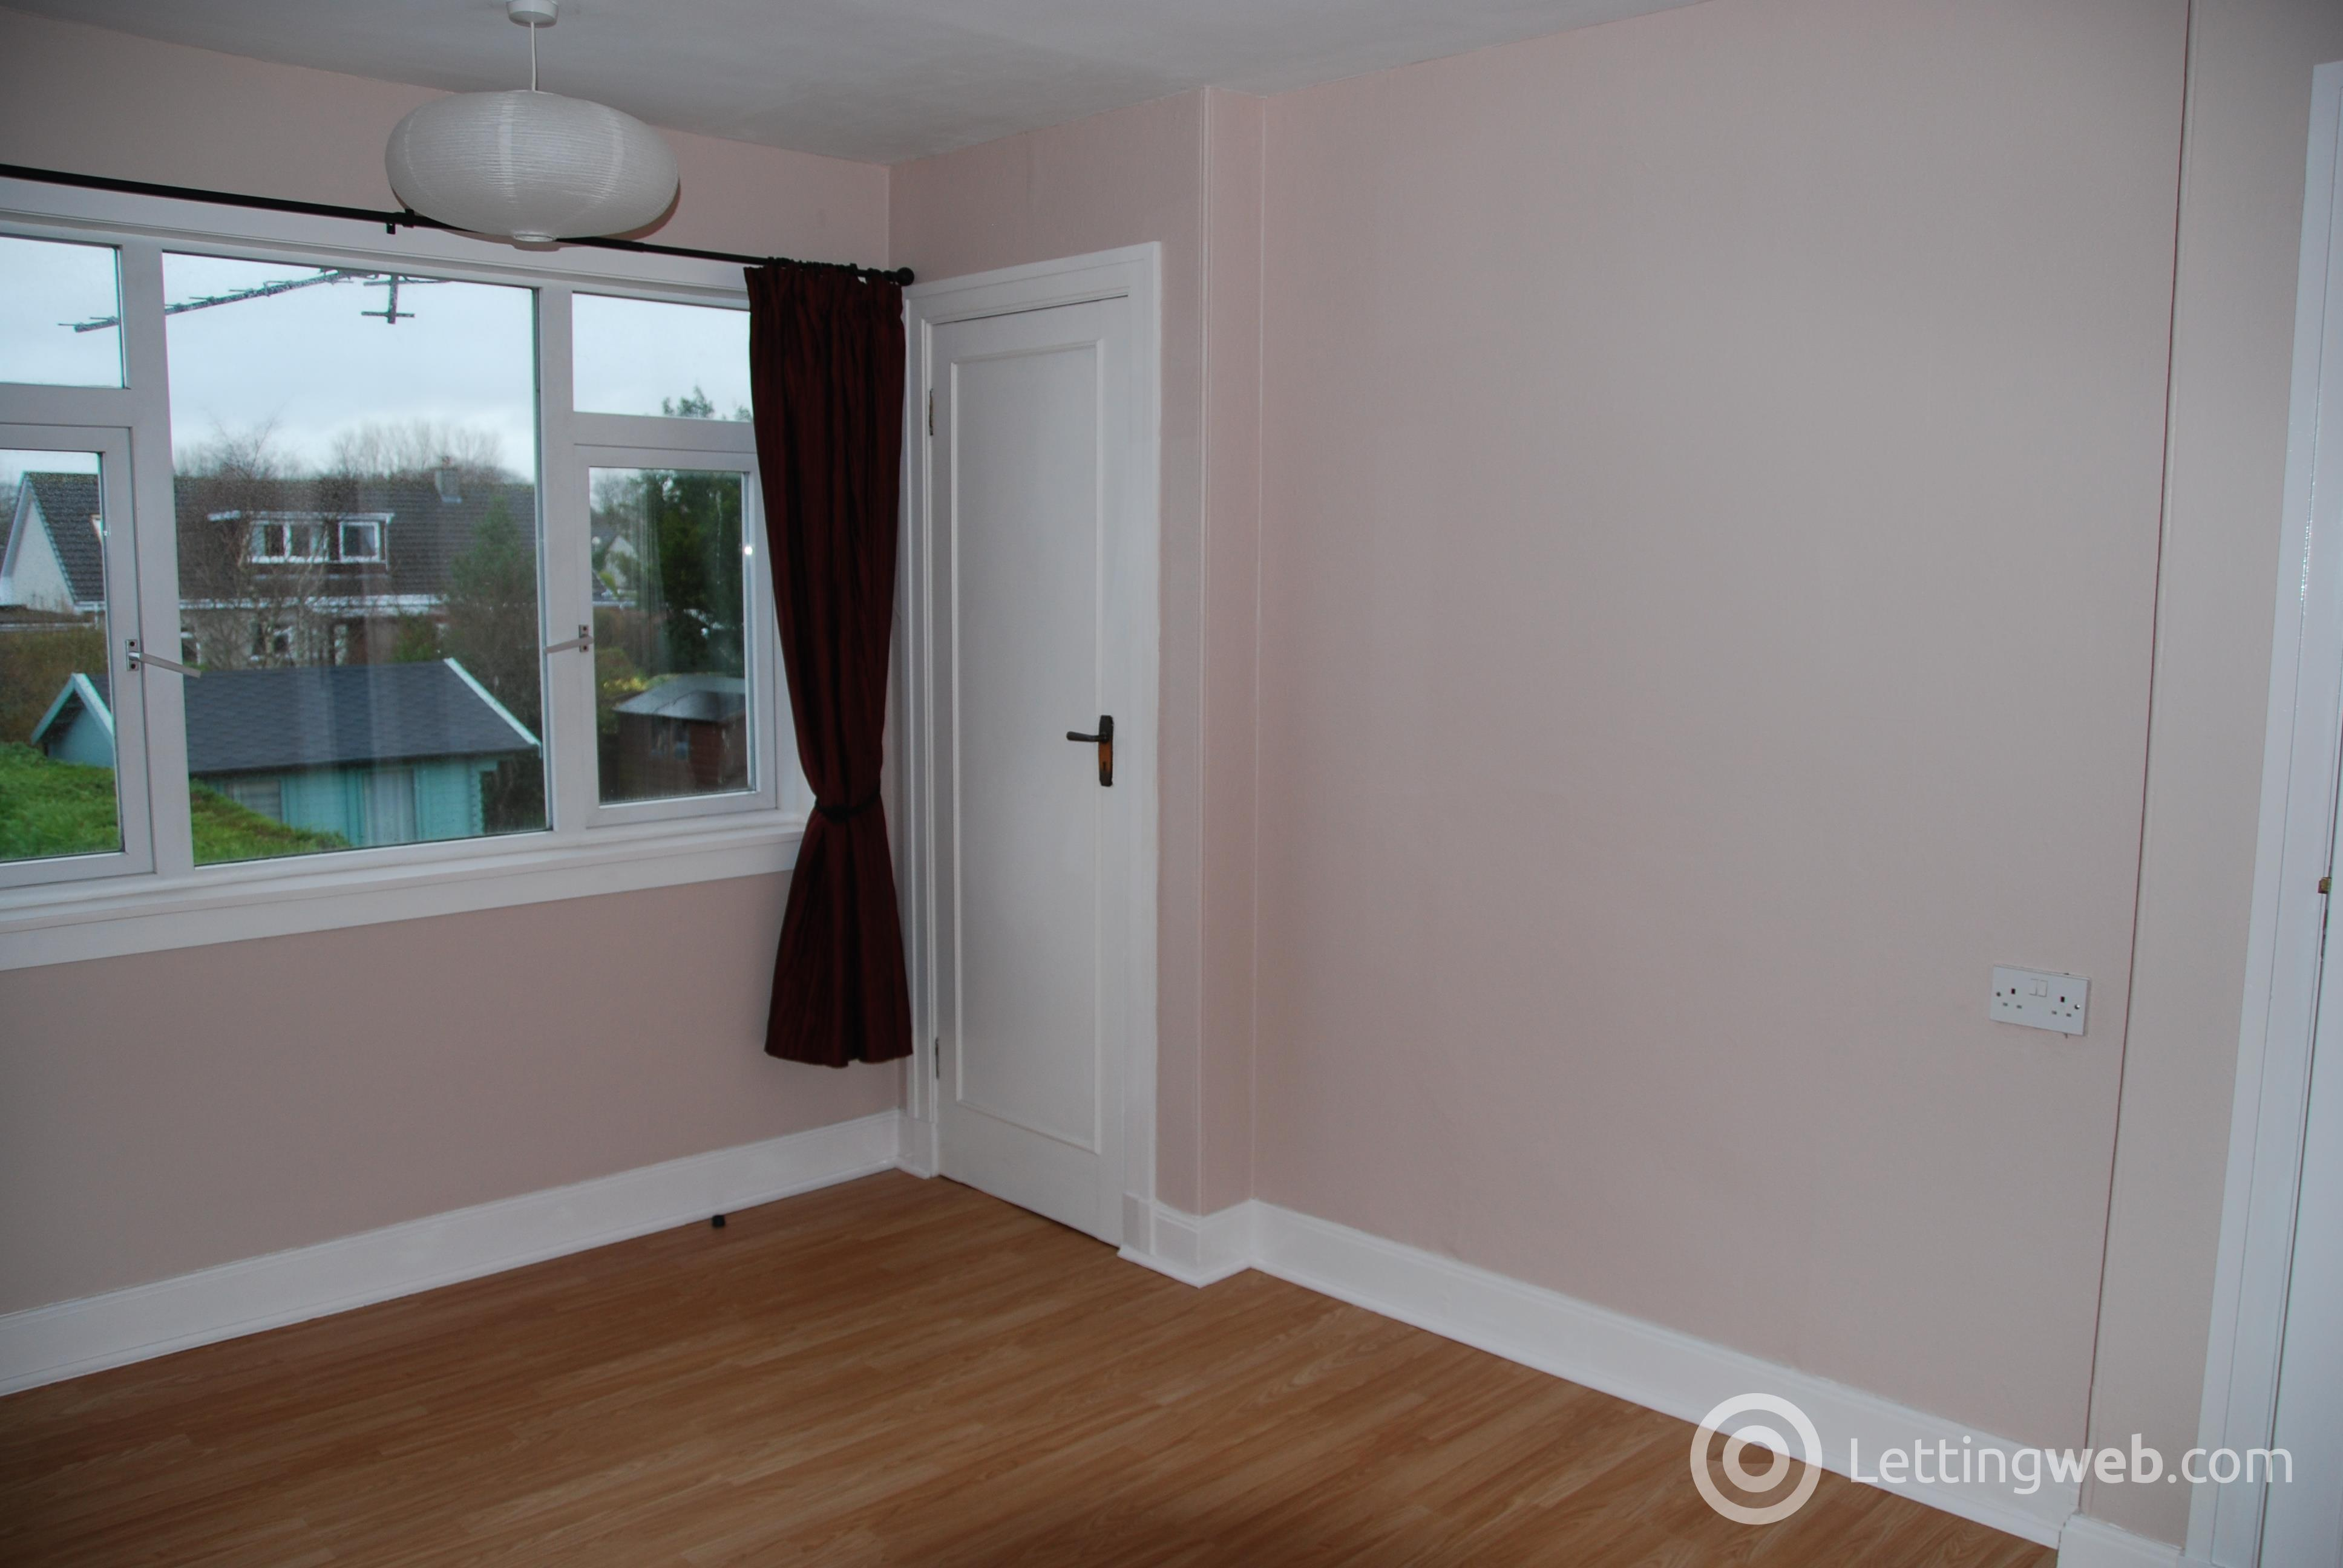 Property to rent in Old Edinburgh Road, Inverness, IV2 3HT